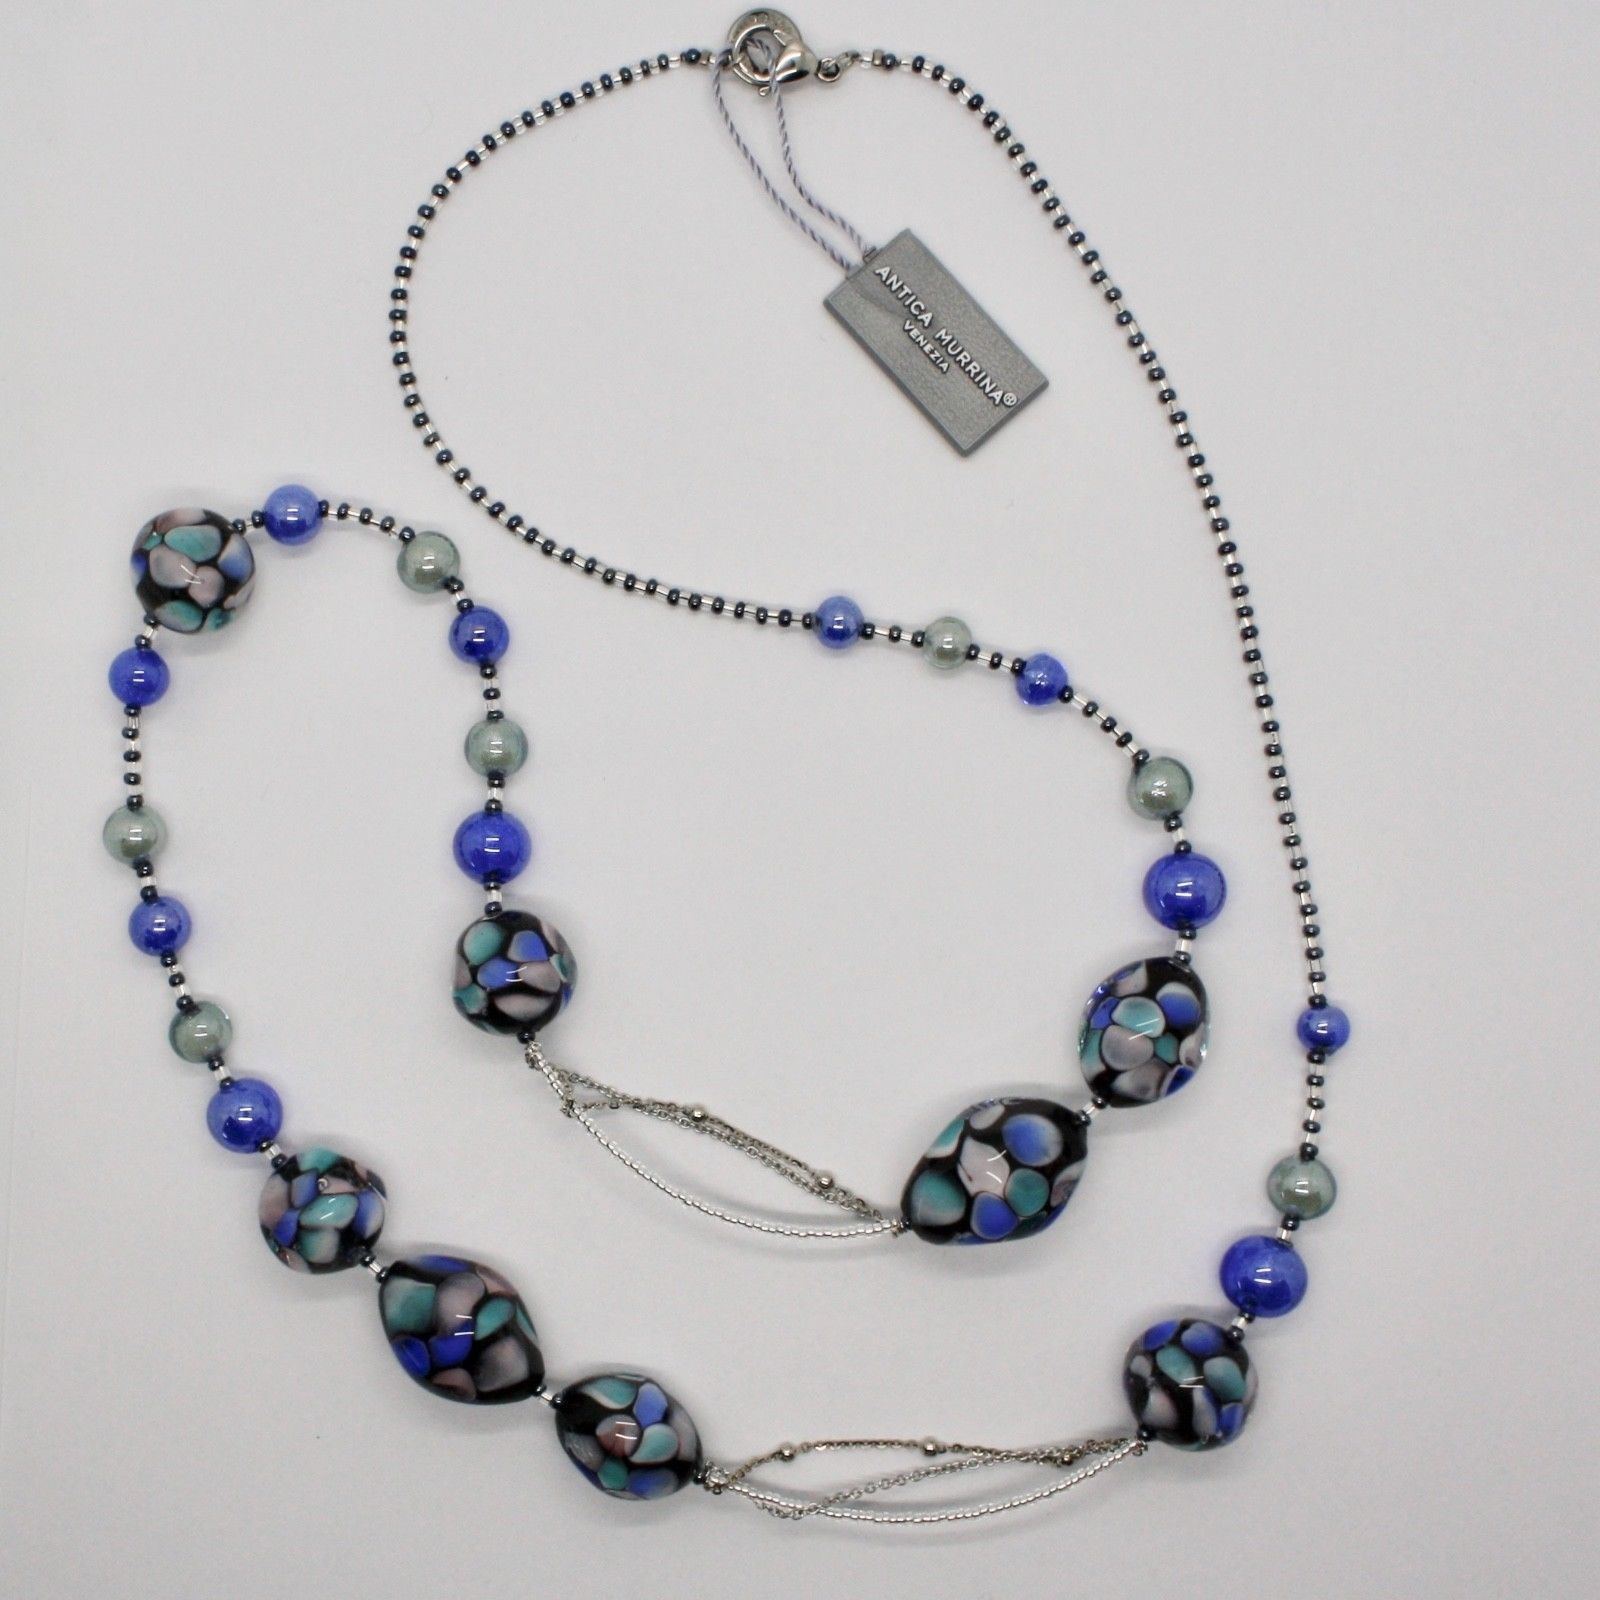 ANTICA MURRINA VENEZIA NECKLACE WITH MURANO GLASS BLACK BLUE TURQUOISE COA09A06